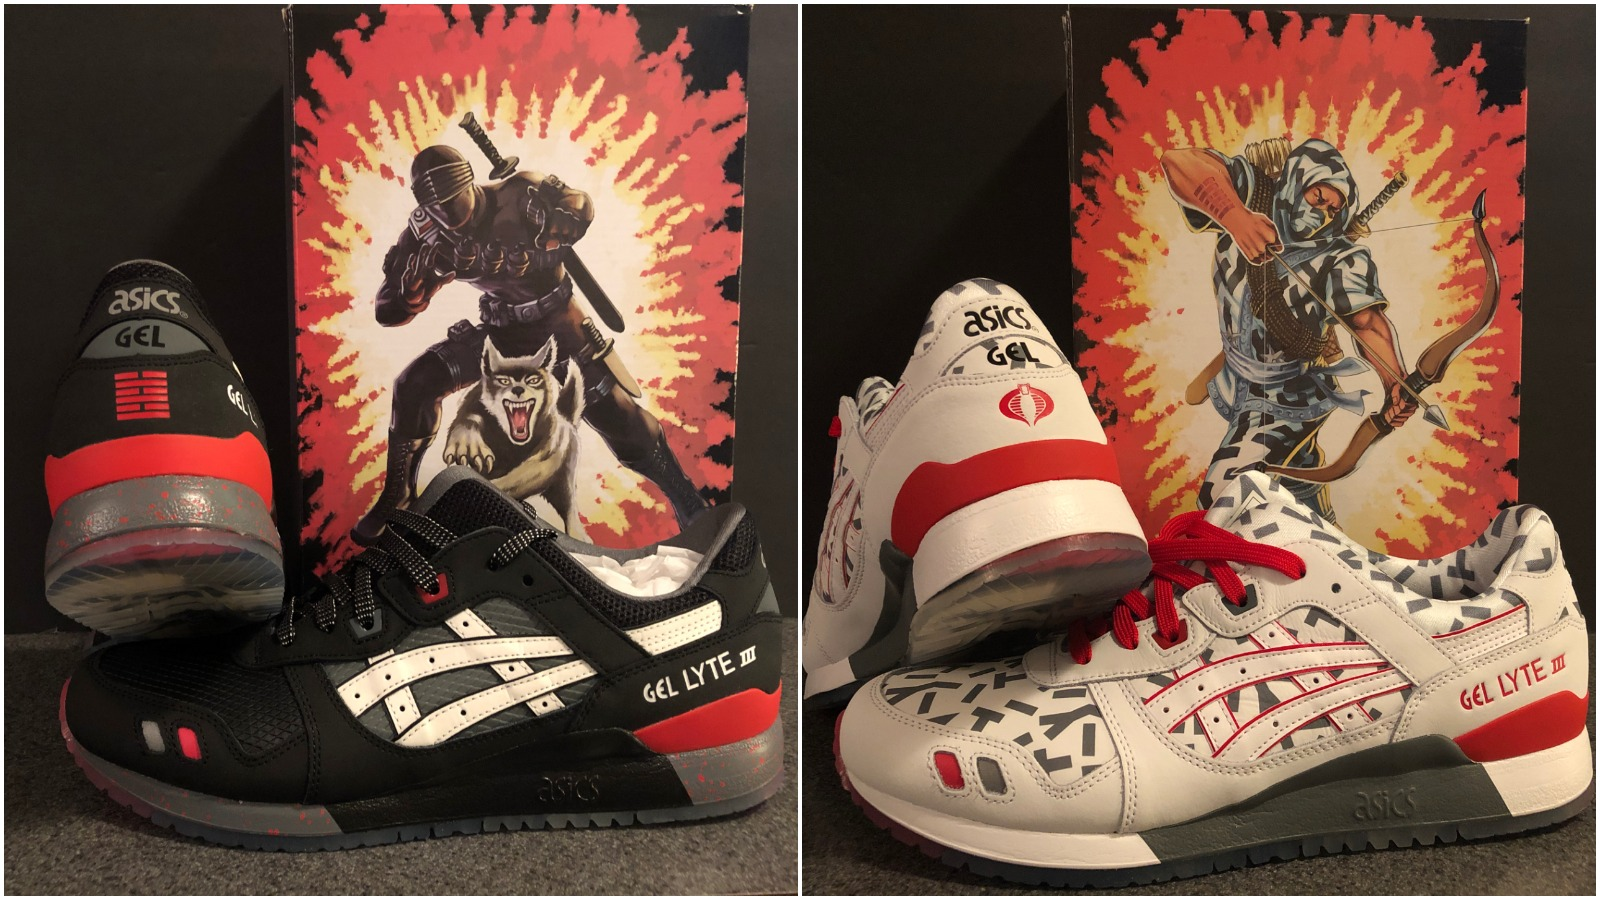 3e4e8e7ea2774 Hasbro and Asics Pair Up For New G.I. Joe Shoe Line, Available at Foot  Locker Now